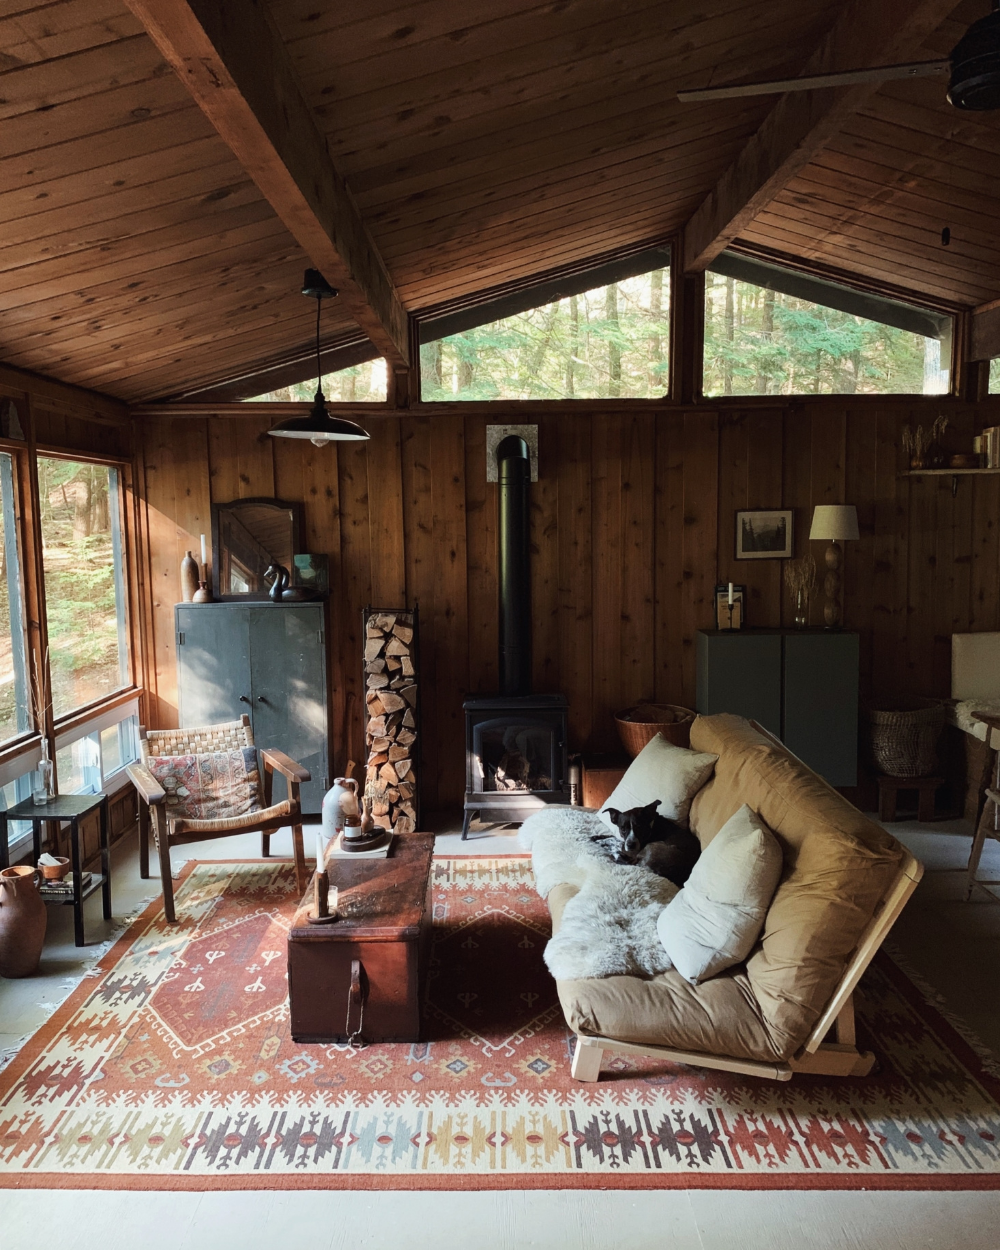 Unplugged A Young Couple S Diy Totally Off The Grid Cabin In The New Hampshire Woods Remodelista Cabin Living Room Cabin Living Cabin Interiors